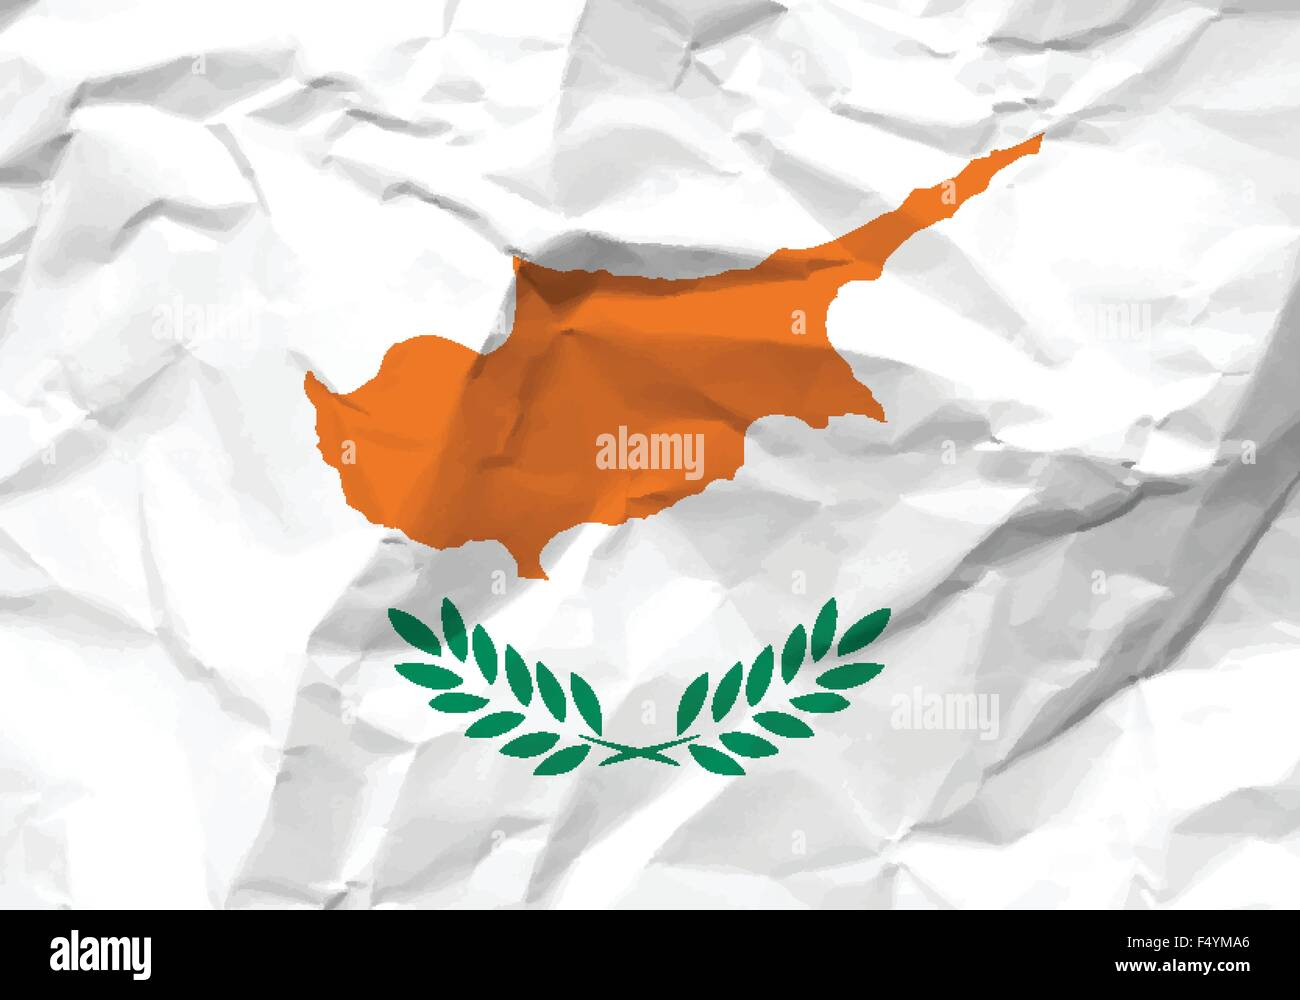 Crumpled paper Cyprus flag textured background. Vector illustration. - Stock Image